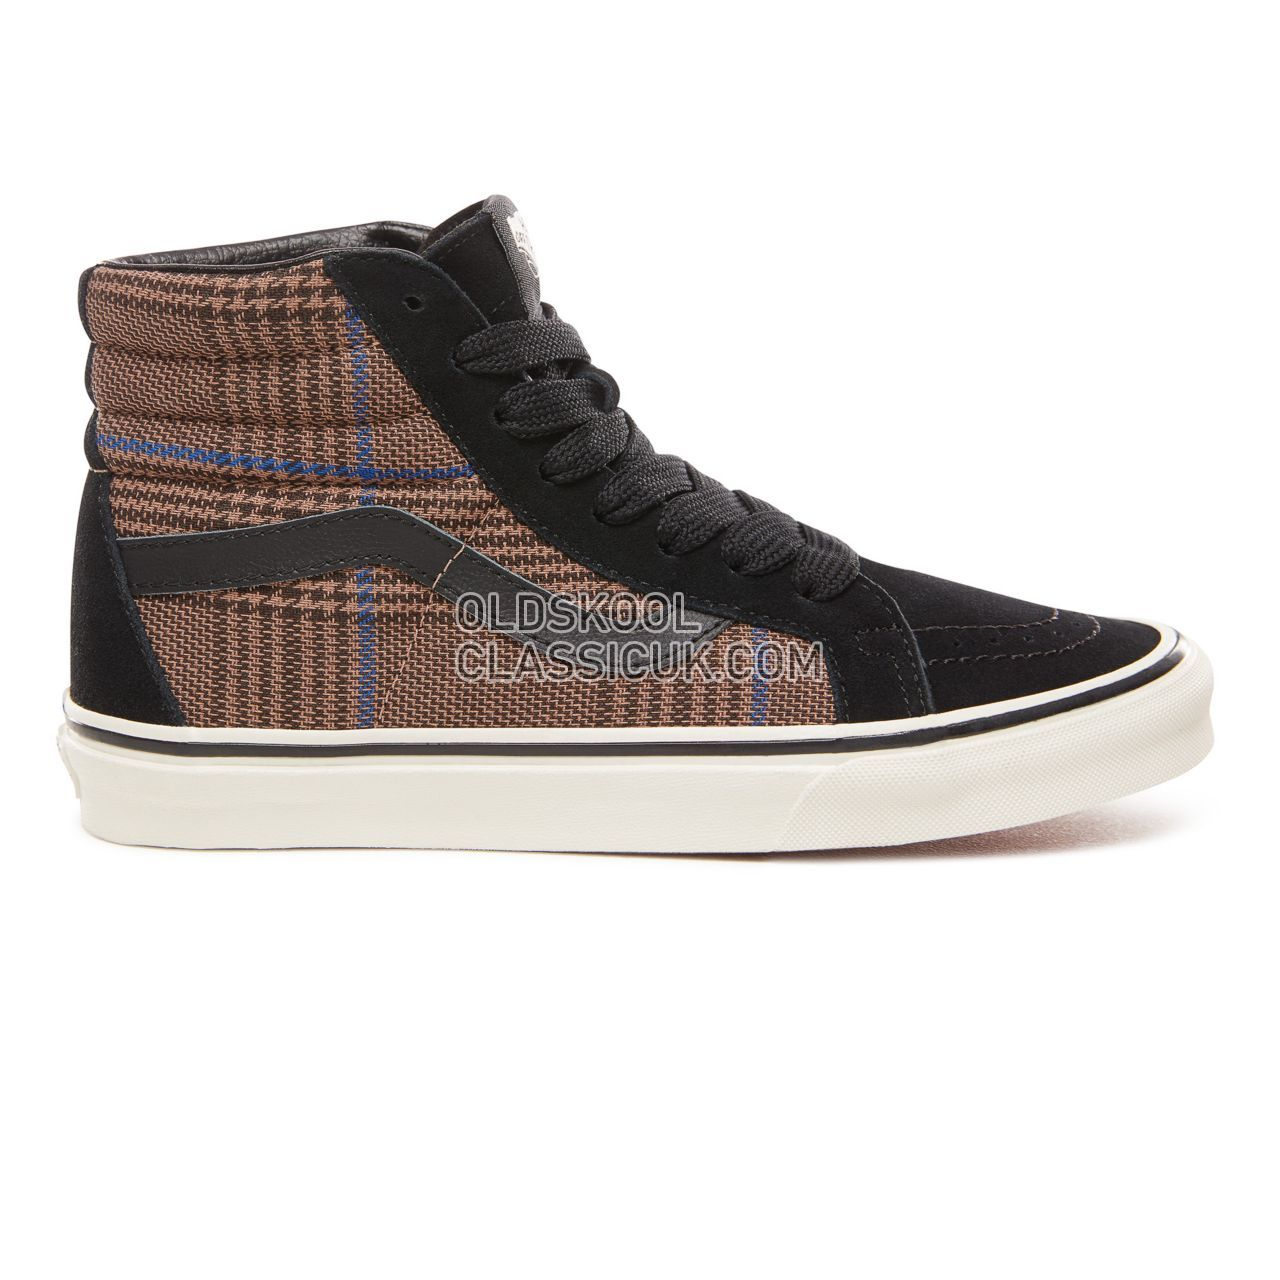 Vans Design Assembly Sk8-Hi Reissue Sneakers Womens (Design Assembly) Glen Plaid/Marshmallow VN0A2XSBUQI Shoes